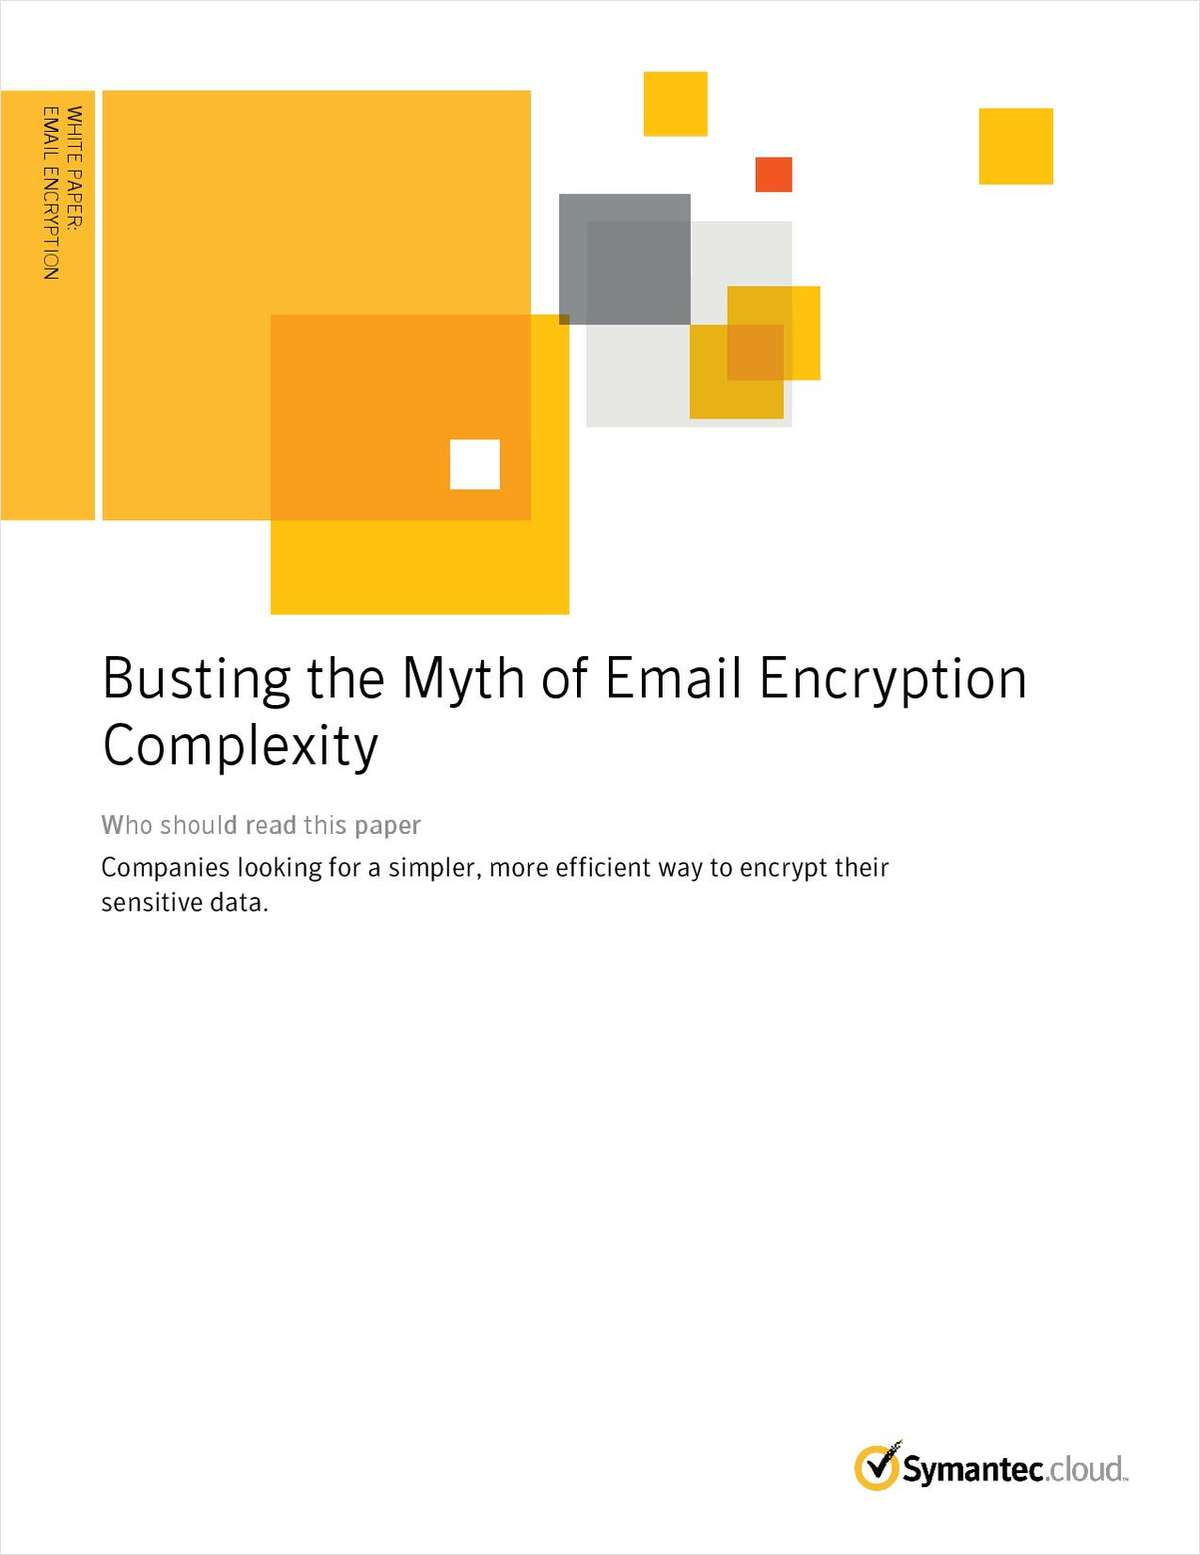 Busting the Myth of Email Encryption Complexity